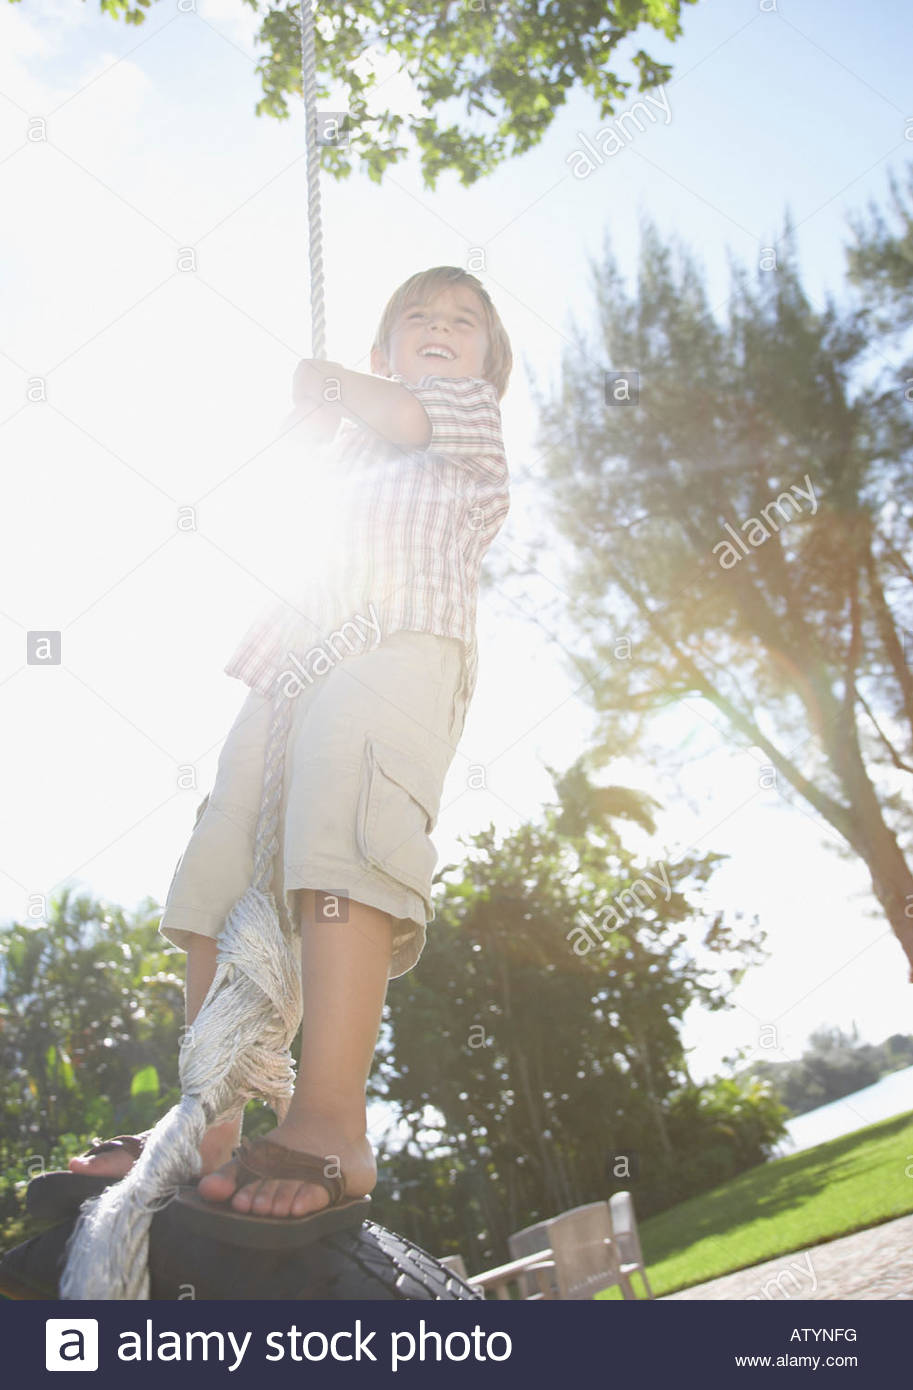 Young boy outdoors at park playing on tire swing - Stock Image